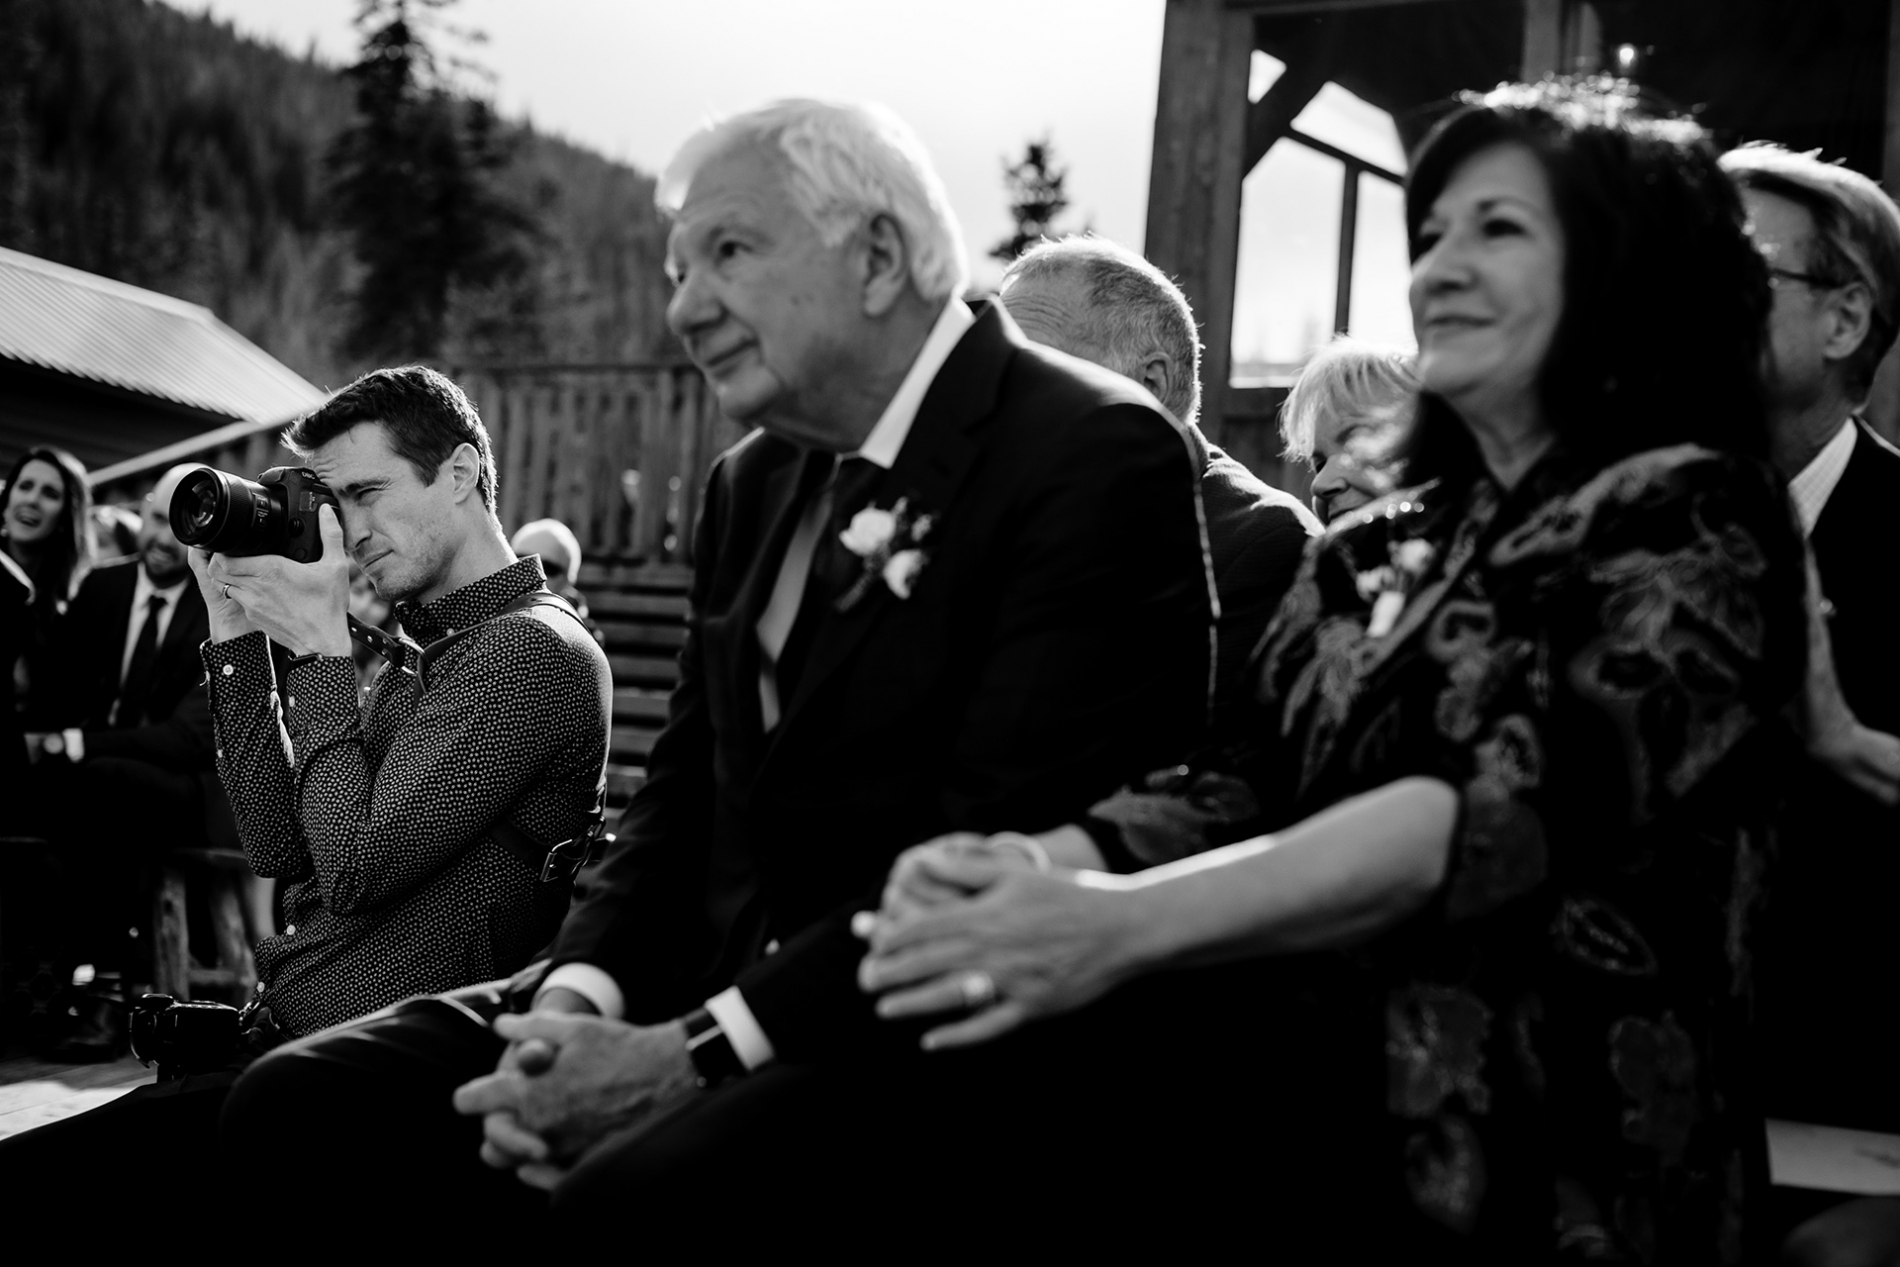 Silverthorne outdoor ceremony. Colorado wedding photographer creating images.